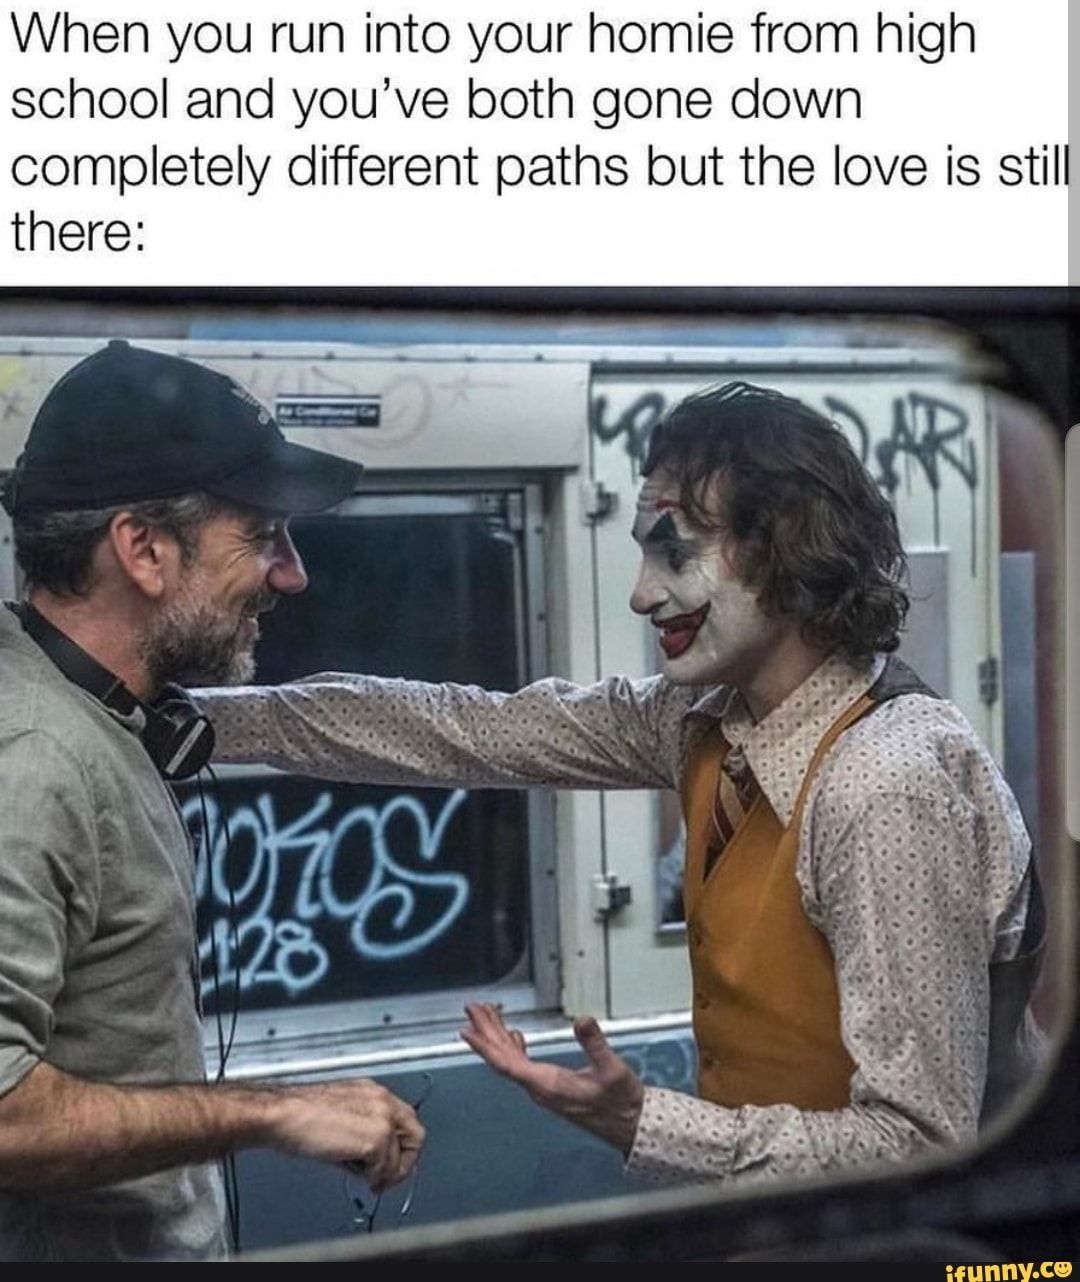 Picture memes Dsadqhr67 — iFunny When you run into your homie from high school and you've both gone down completely different paths but the love is still there: – popular memes on the site